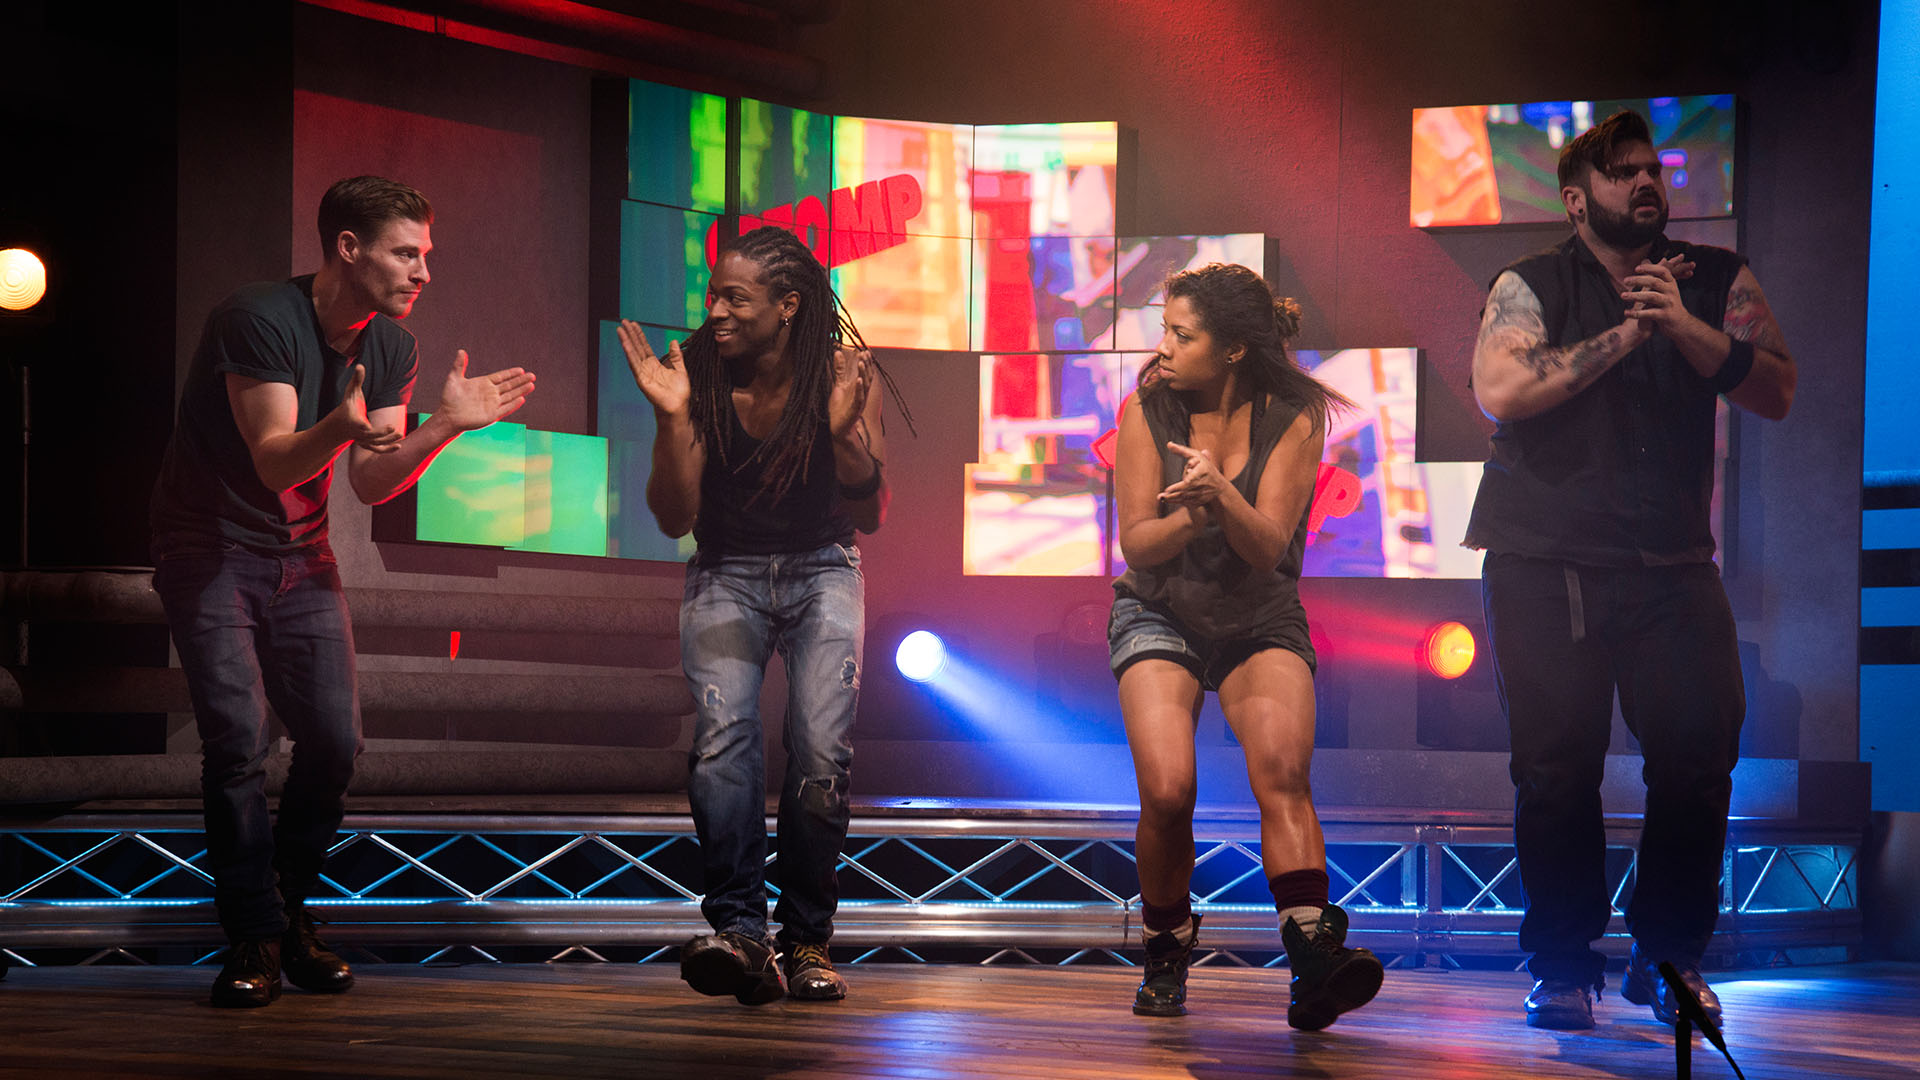 Stomp (Rob Shaw, Nigel Clarke, Serena morgan, Andy Patrick) perform Hands and Feet on tv show #celapossofare